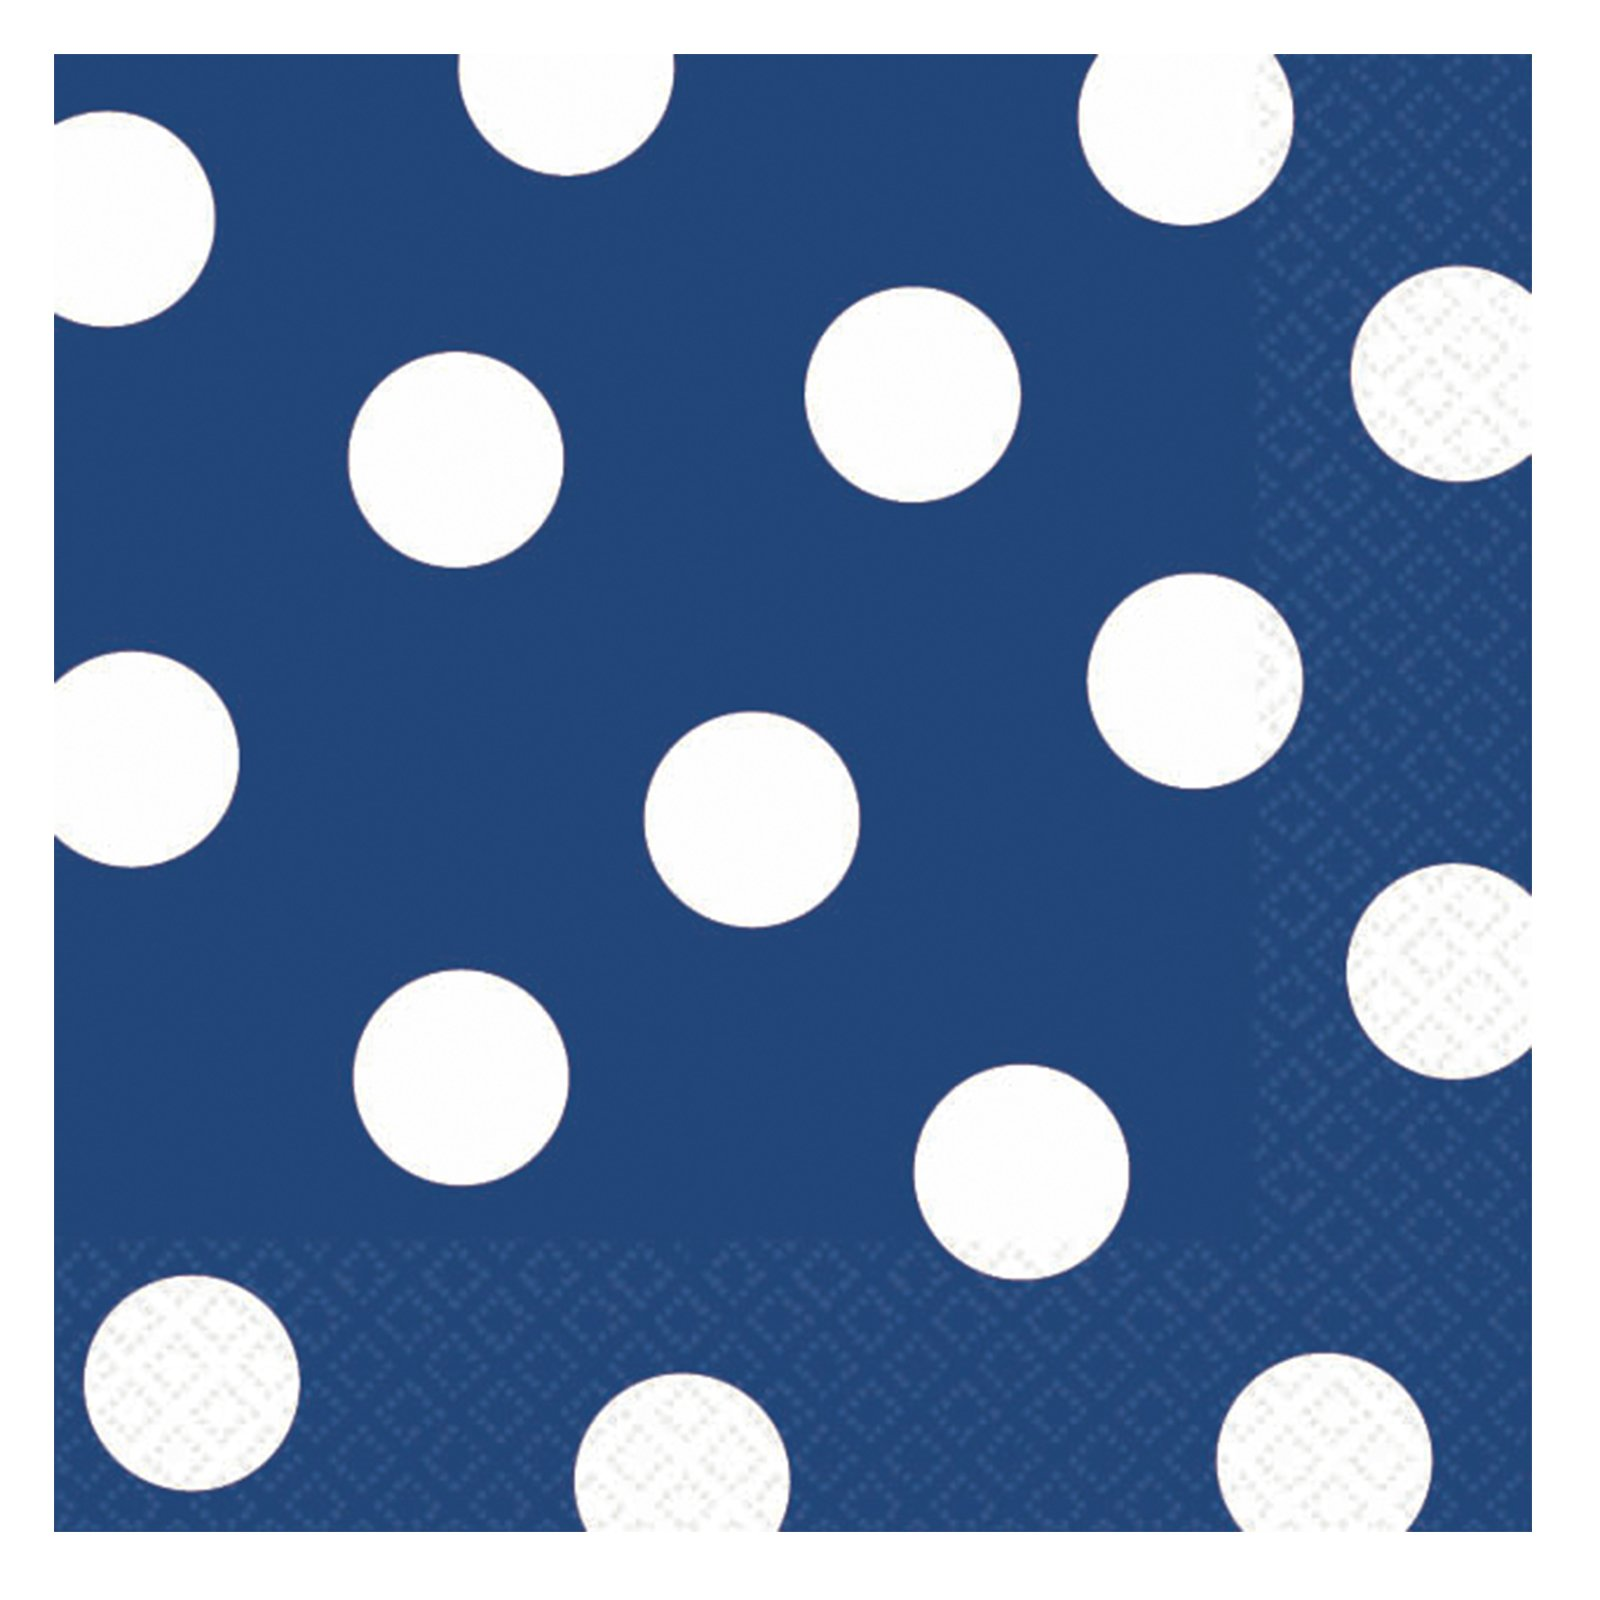 Blue Polka Dot Beverage Napkins (36 count)